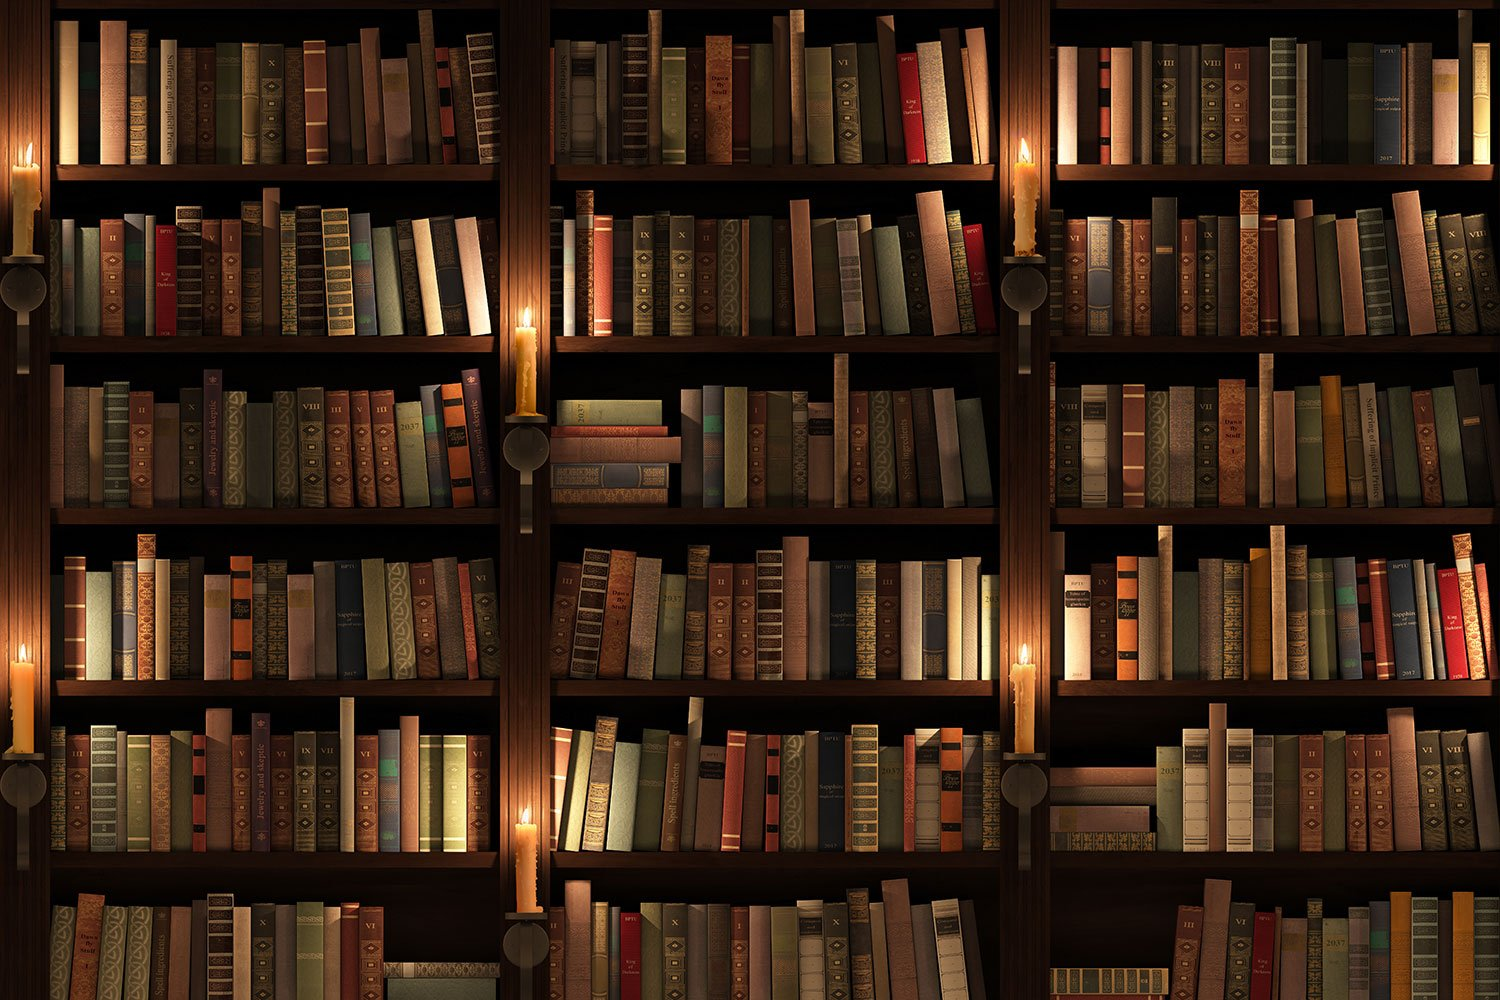 [47+] Old Library Wallpaper on WallpaperSafari